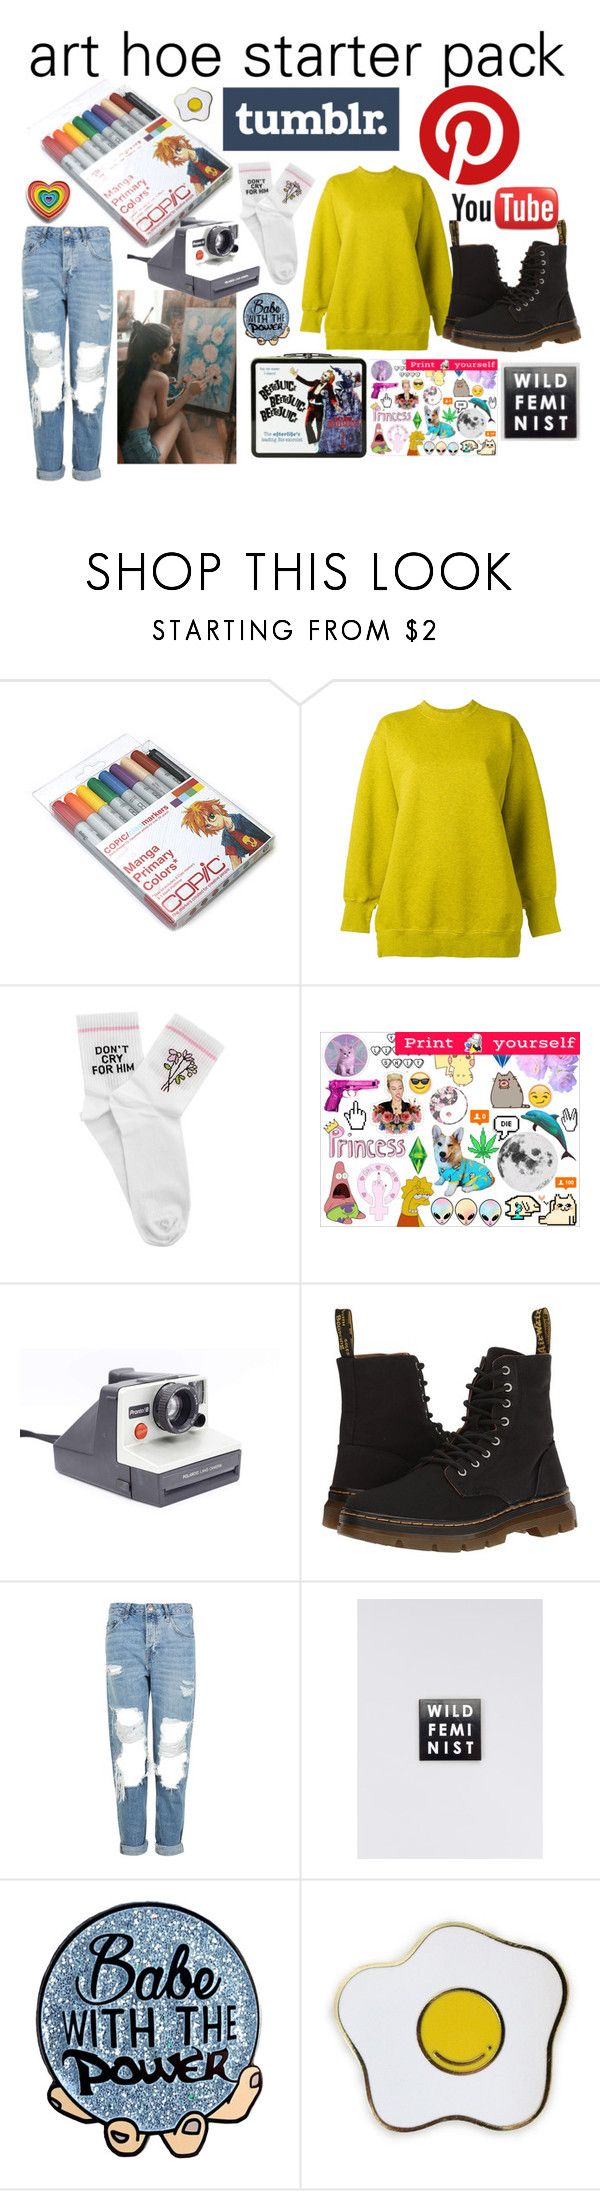 """""""art hoe starter pack"""" by petshopgirl45 on Polyvore featuring Ports 1961, Yeah Bunny, Polaroid, Dr. Martens, Topshop, Wildfang and Laser Kitten"""